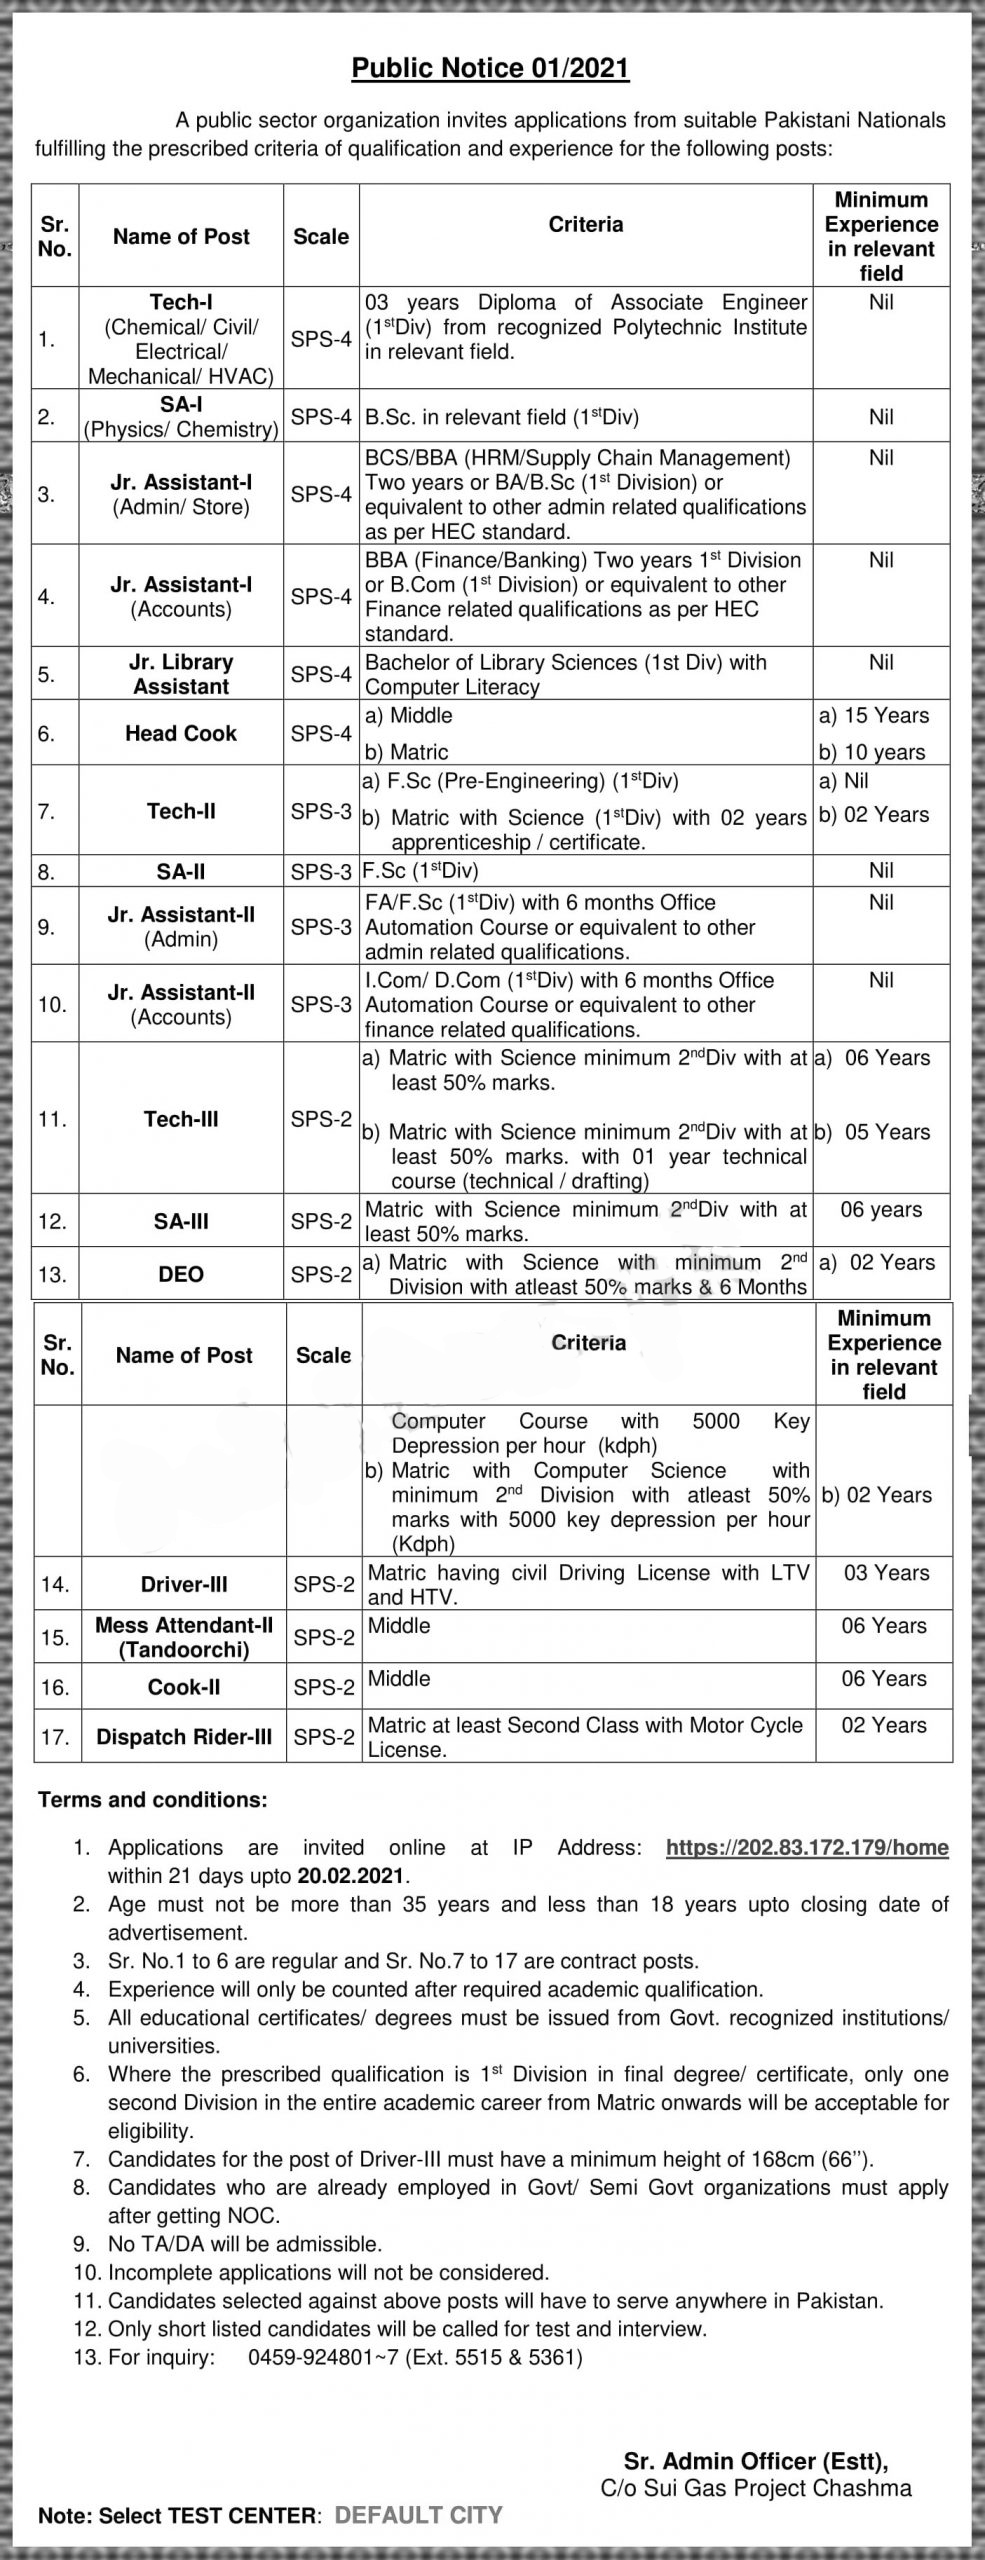 Sui Gas Department  Atomic Energy Chashma Plant Jobs 2021  Apply online